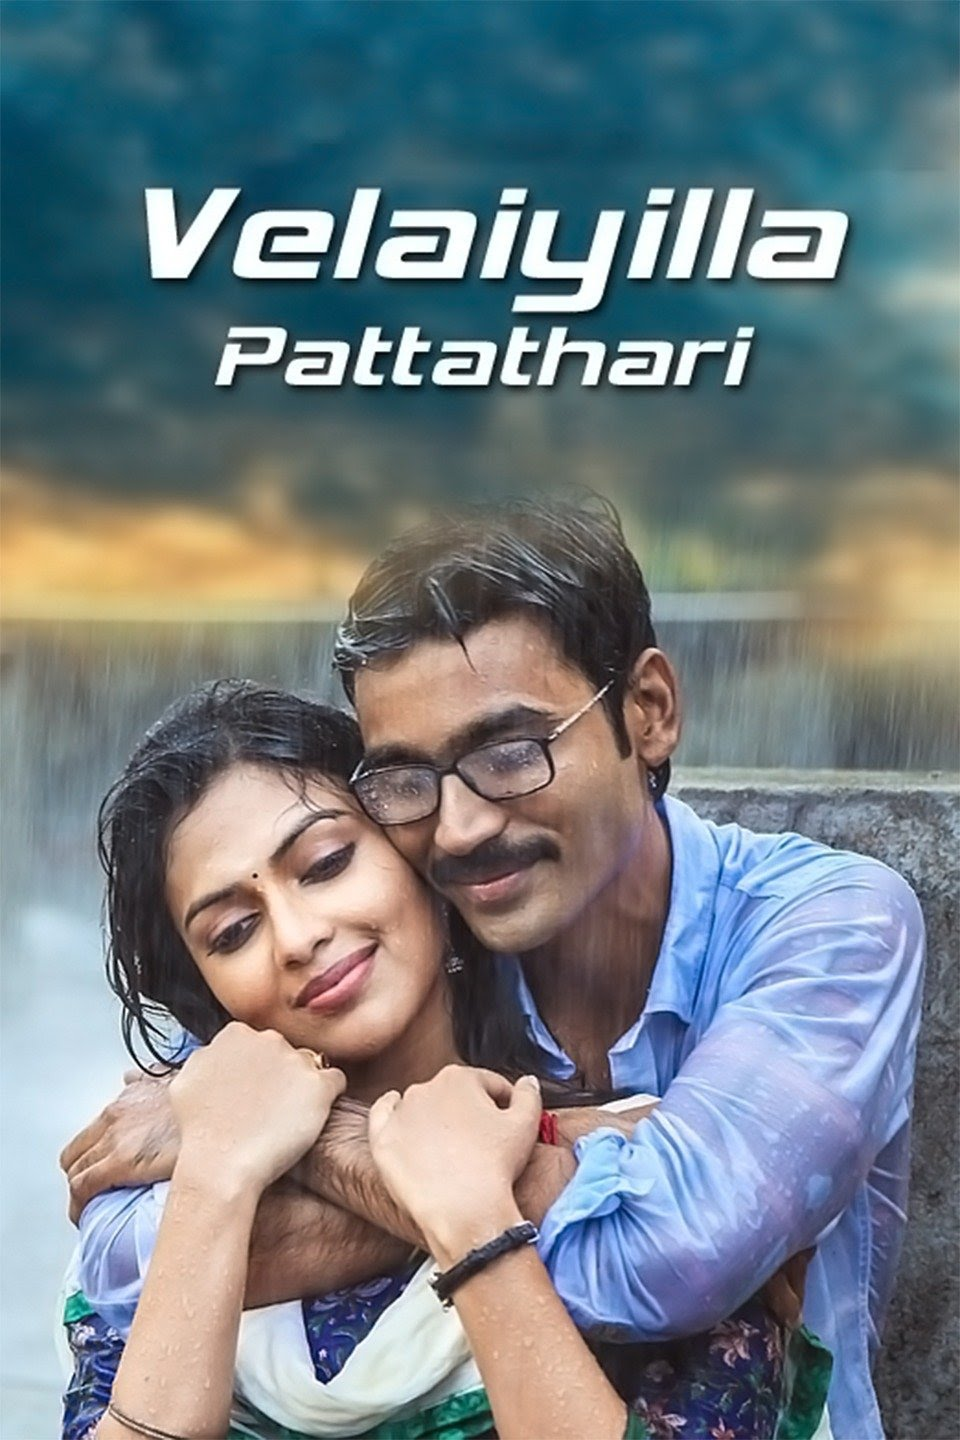 Velaiyilla Pattathari (VIP) 2014 Hindi Dual Audio 472MB UNCUT HDRip Download